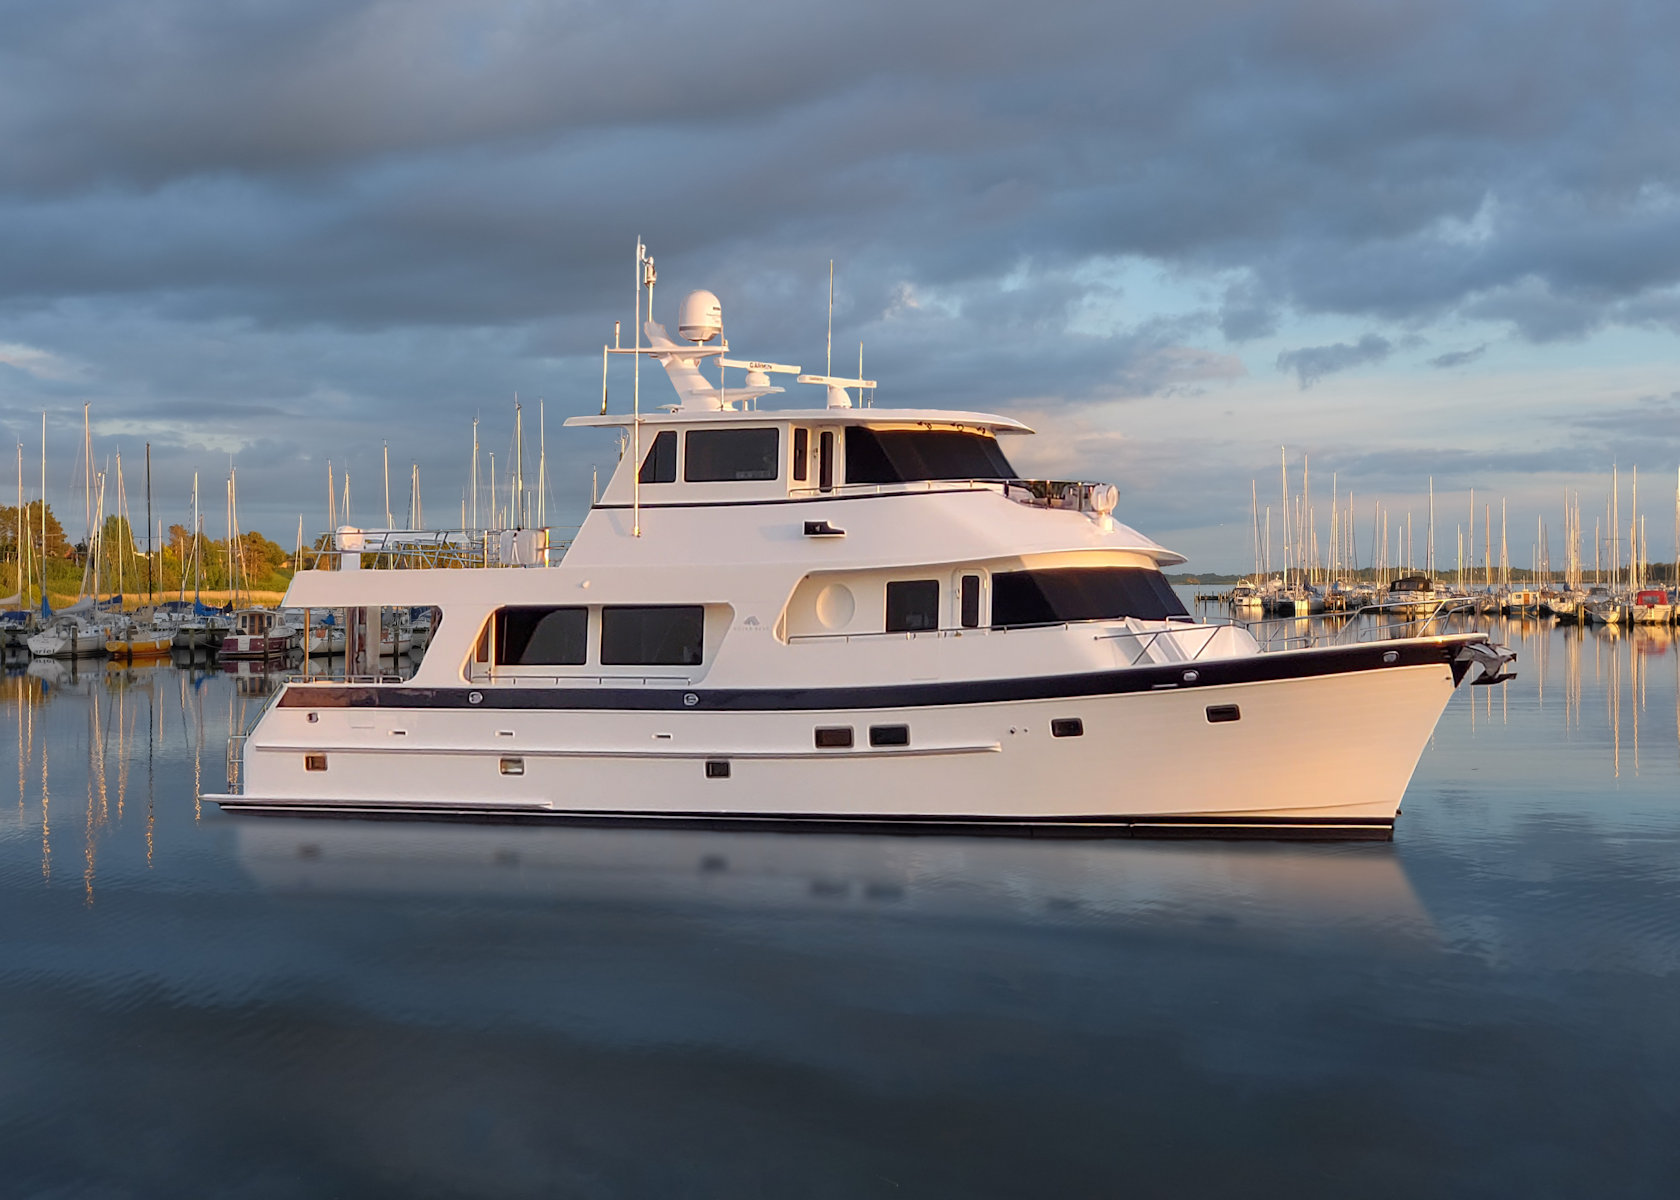 360 VR Virtual Tours of the Outer Reef 720 DeluxBridge Motoryacht – VRCLOUD